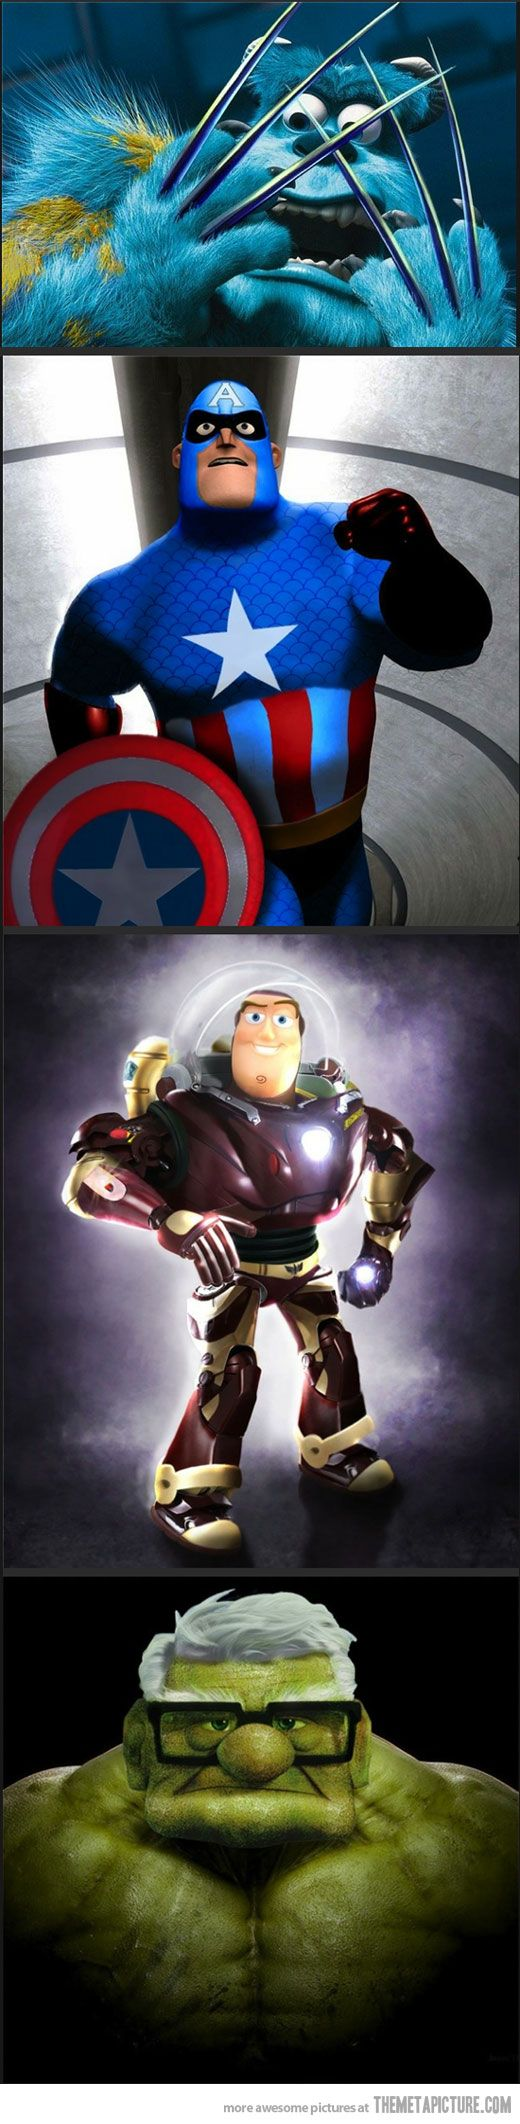 Funny Pixar Marvel characters   Make this movie!